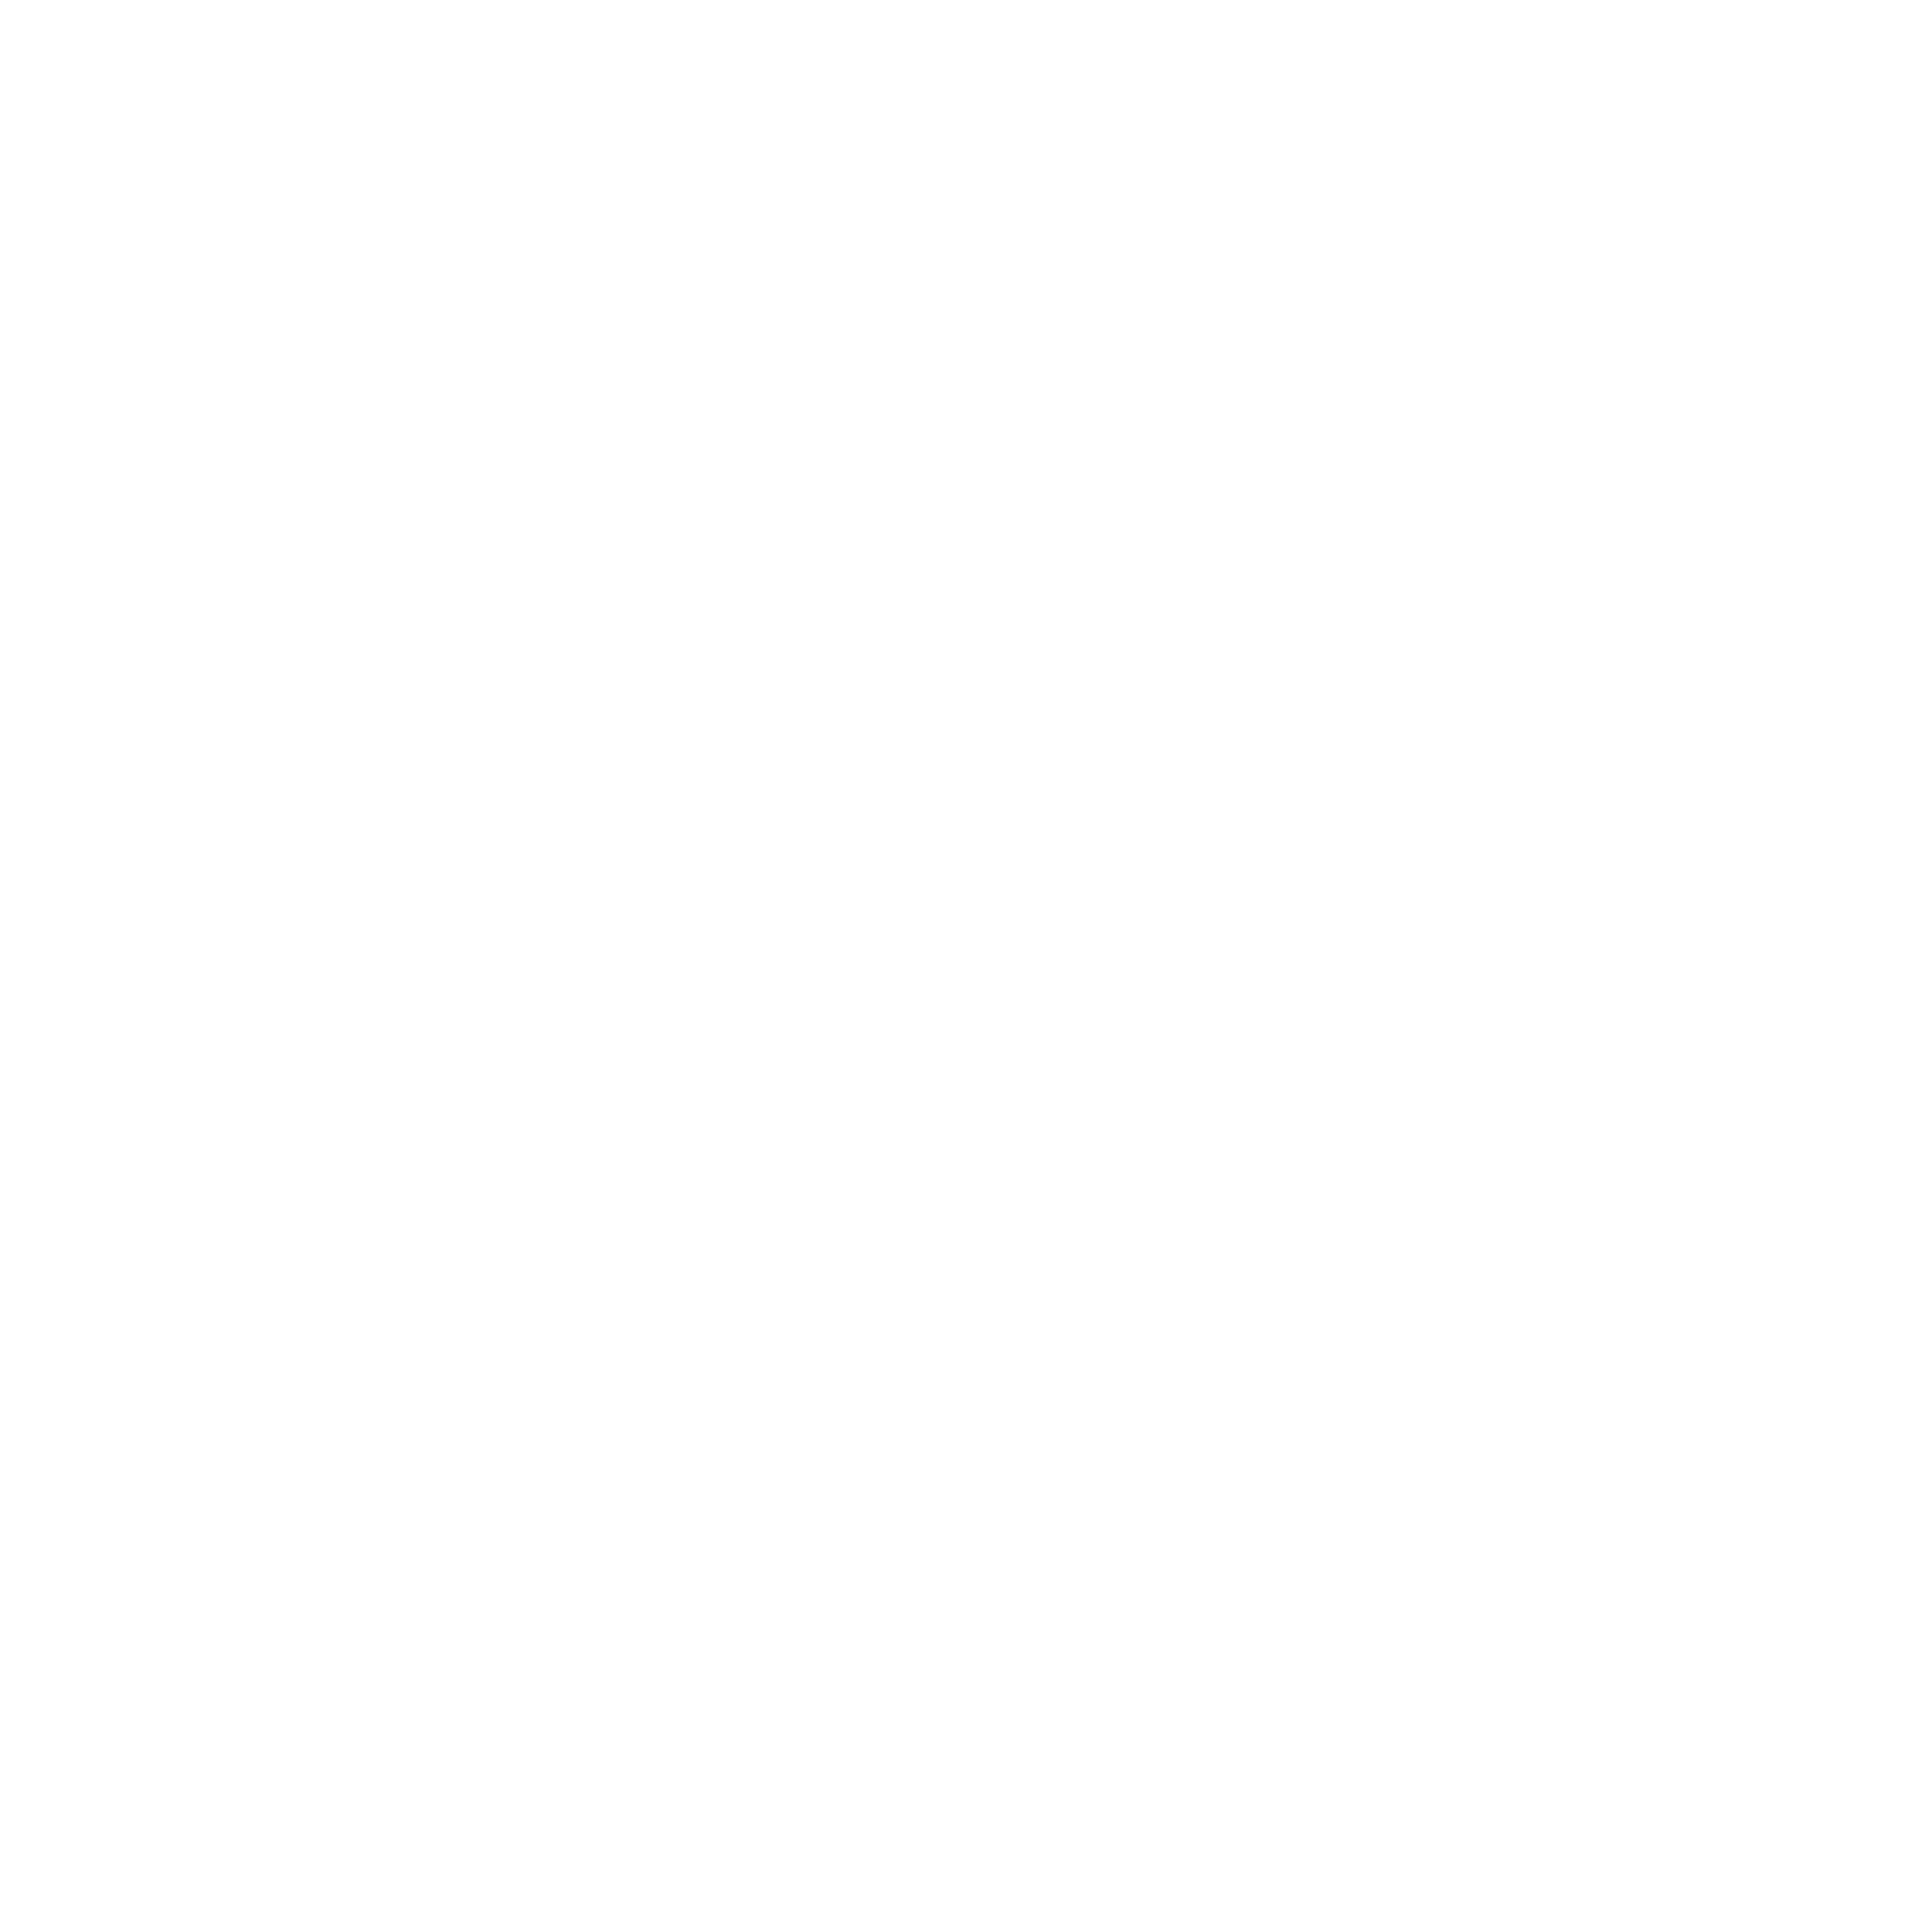 Data Inc.png